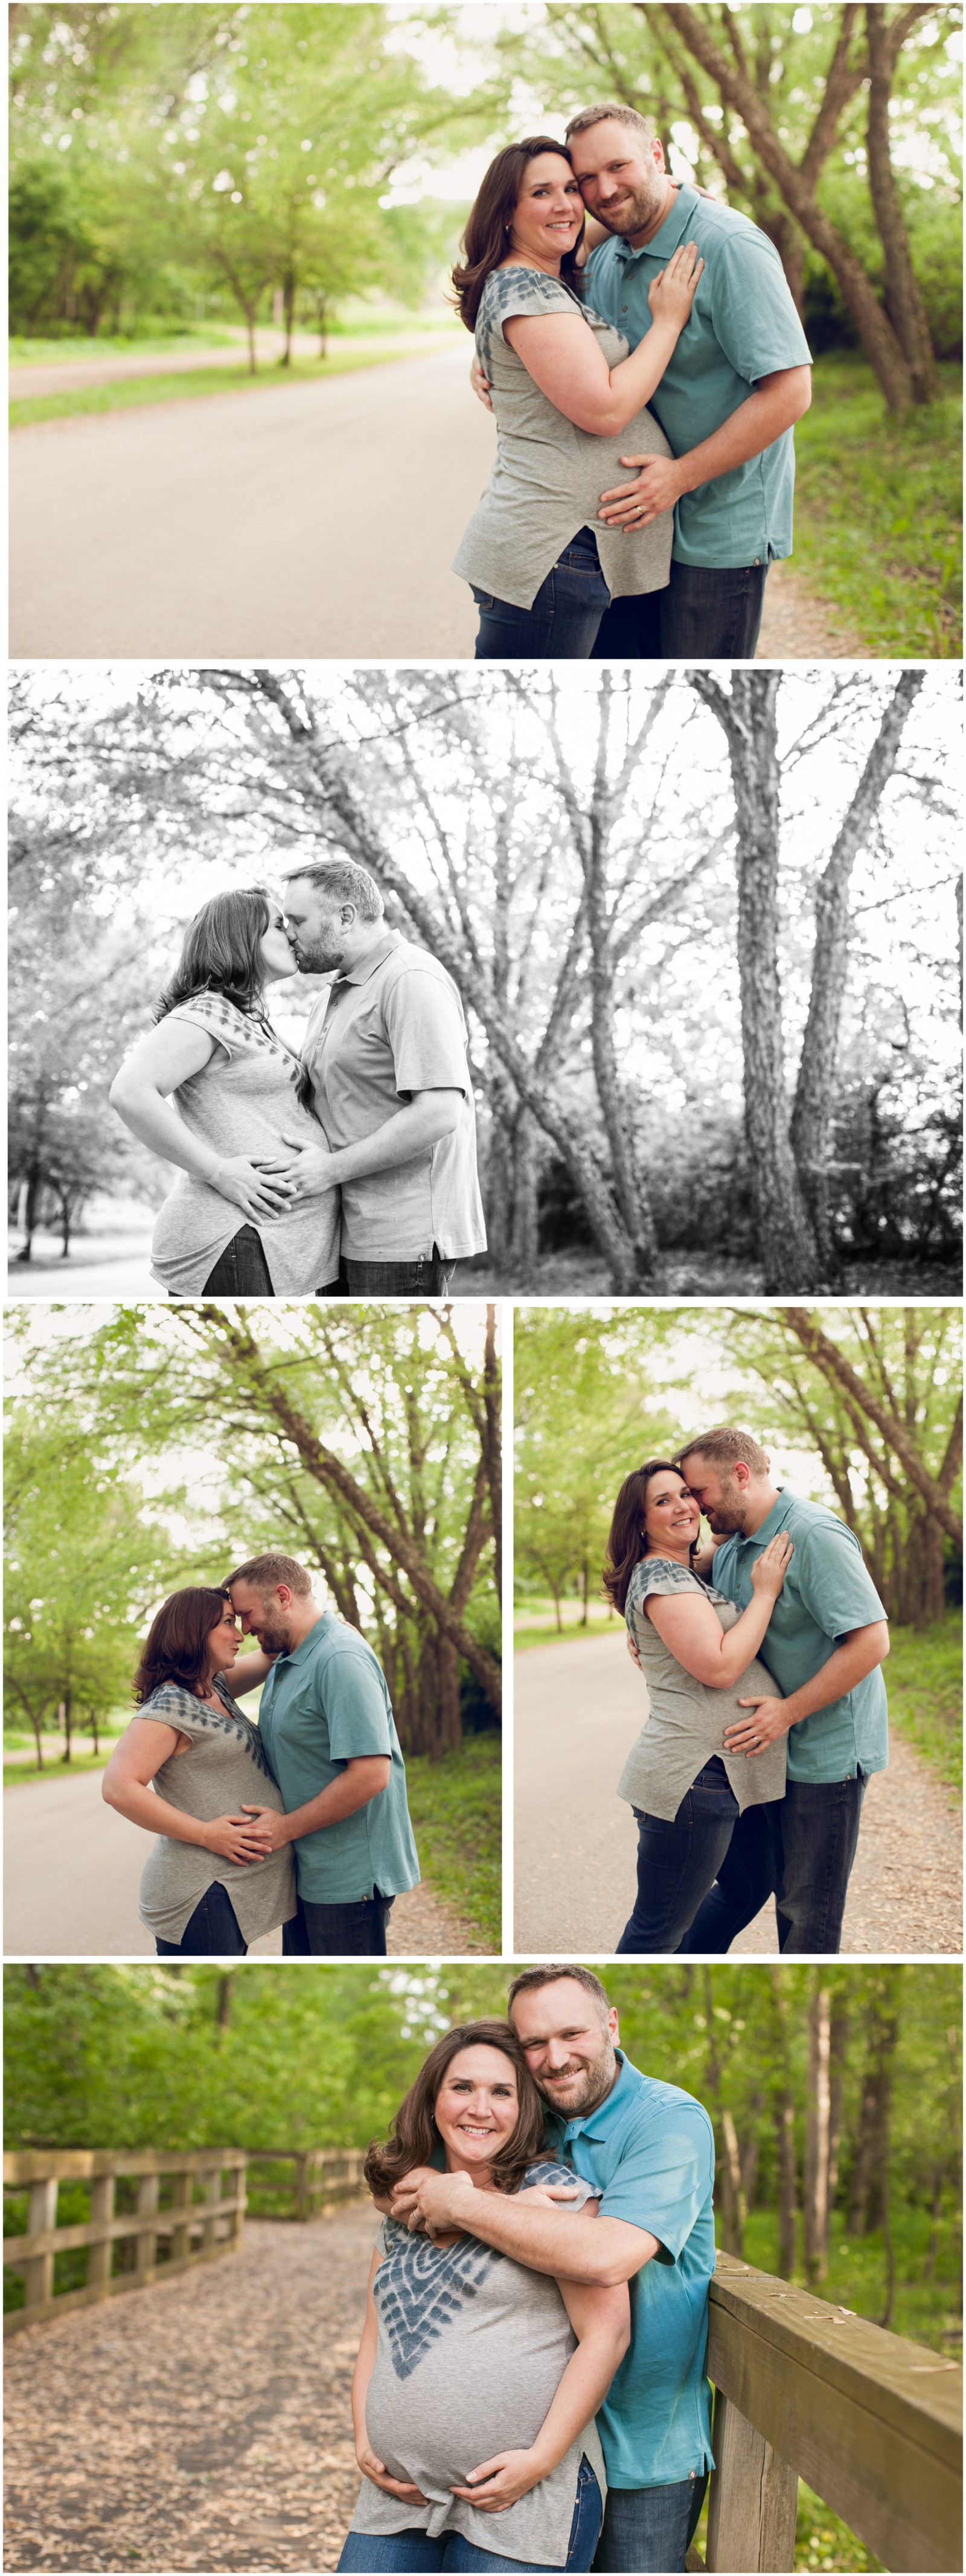 Maternity Session Lafayette Indiana Pearl Photo & Design